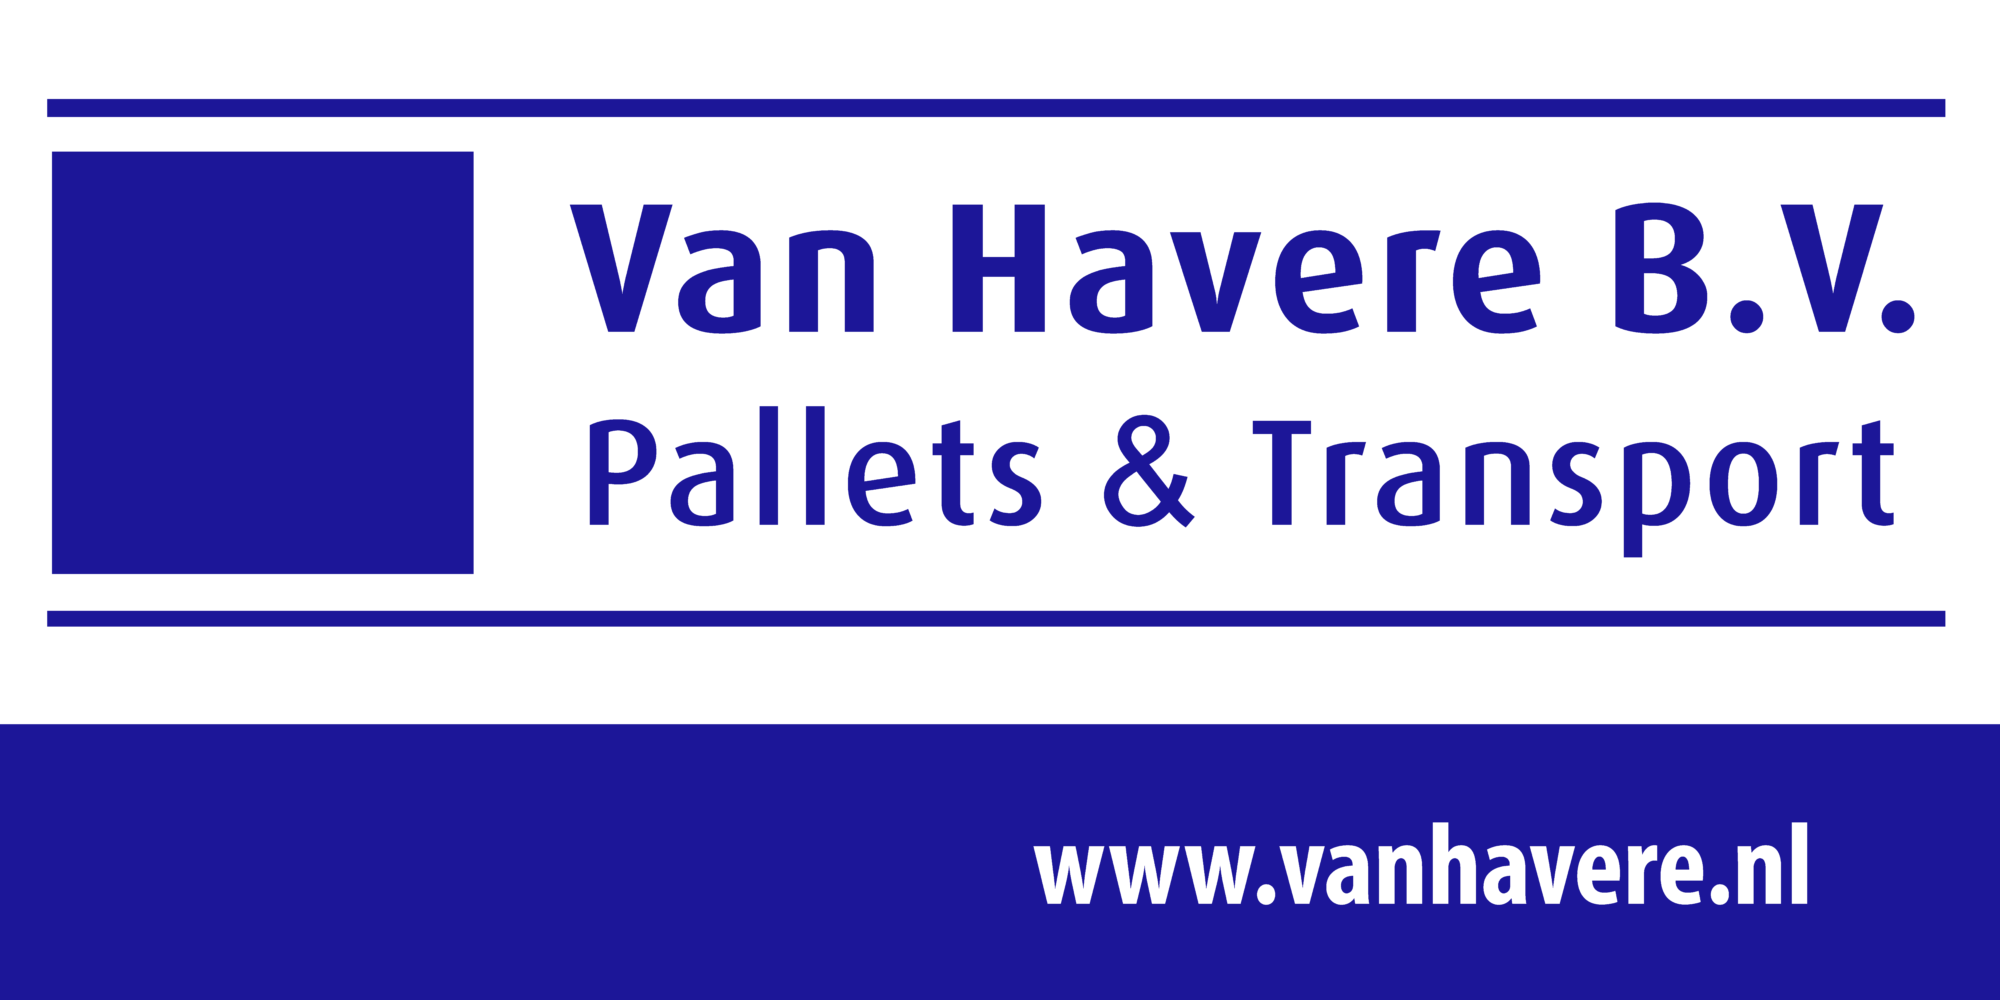 Van Havere Pallets & Transport. www.vanhavere.nl